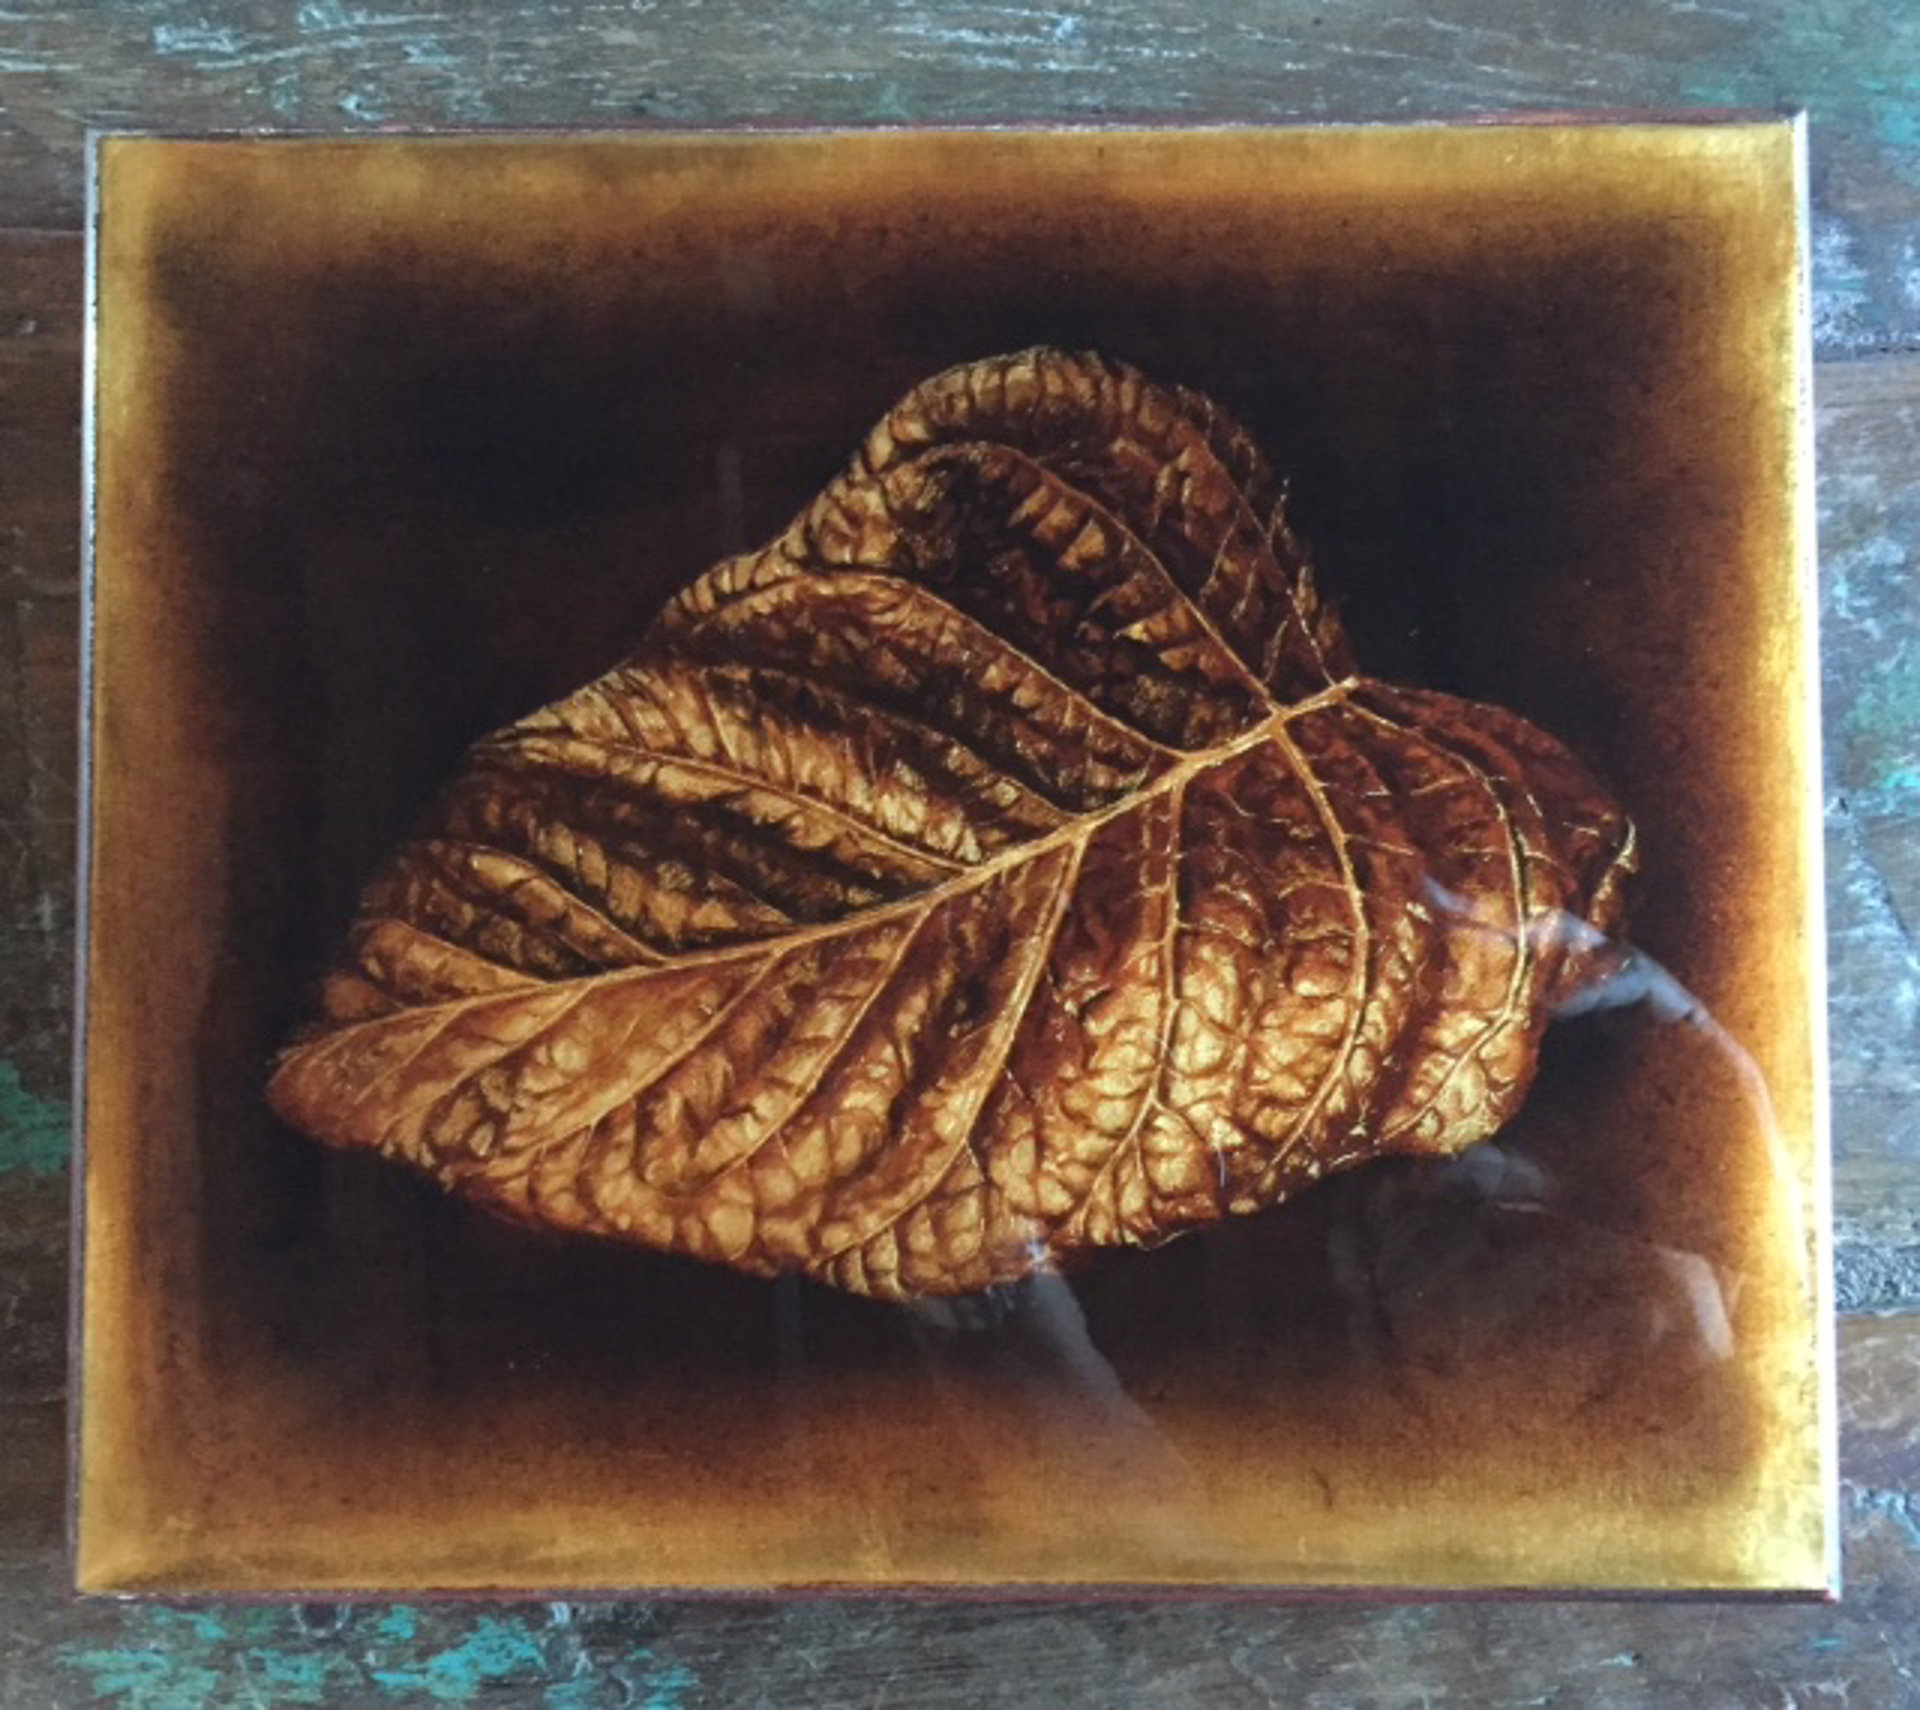 Tobacco Leaf by Larissa Morais